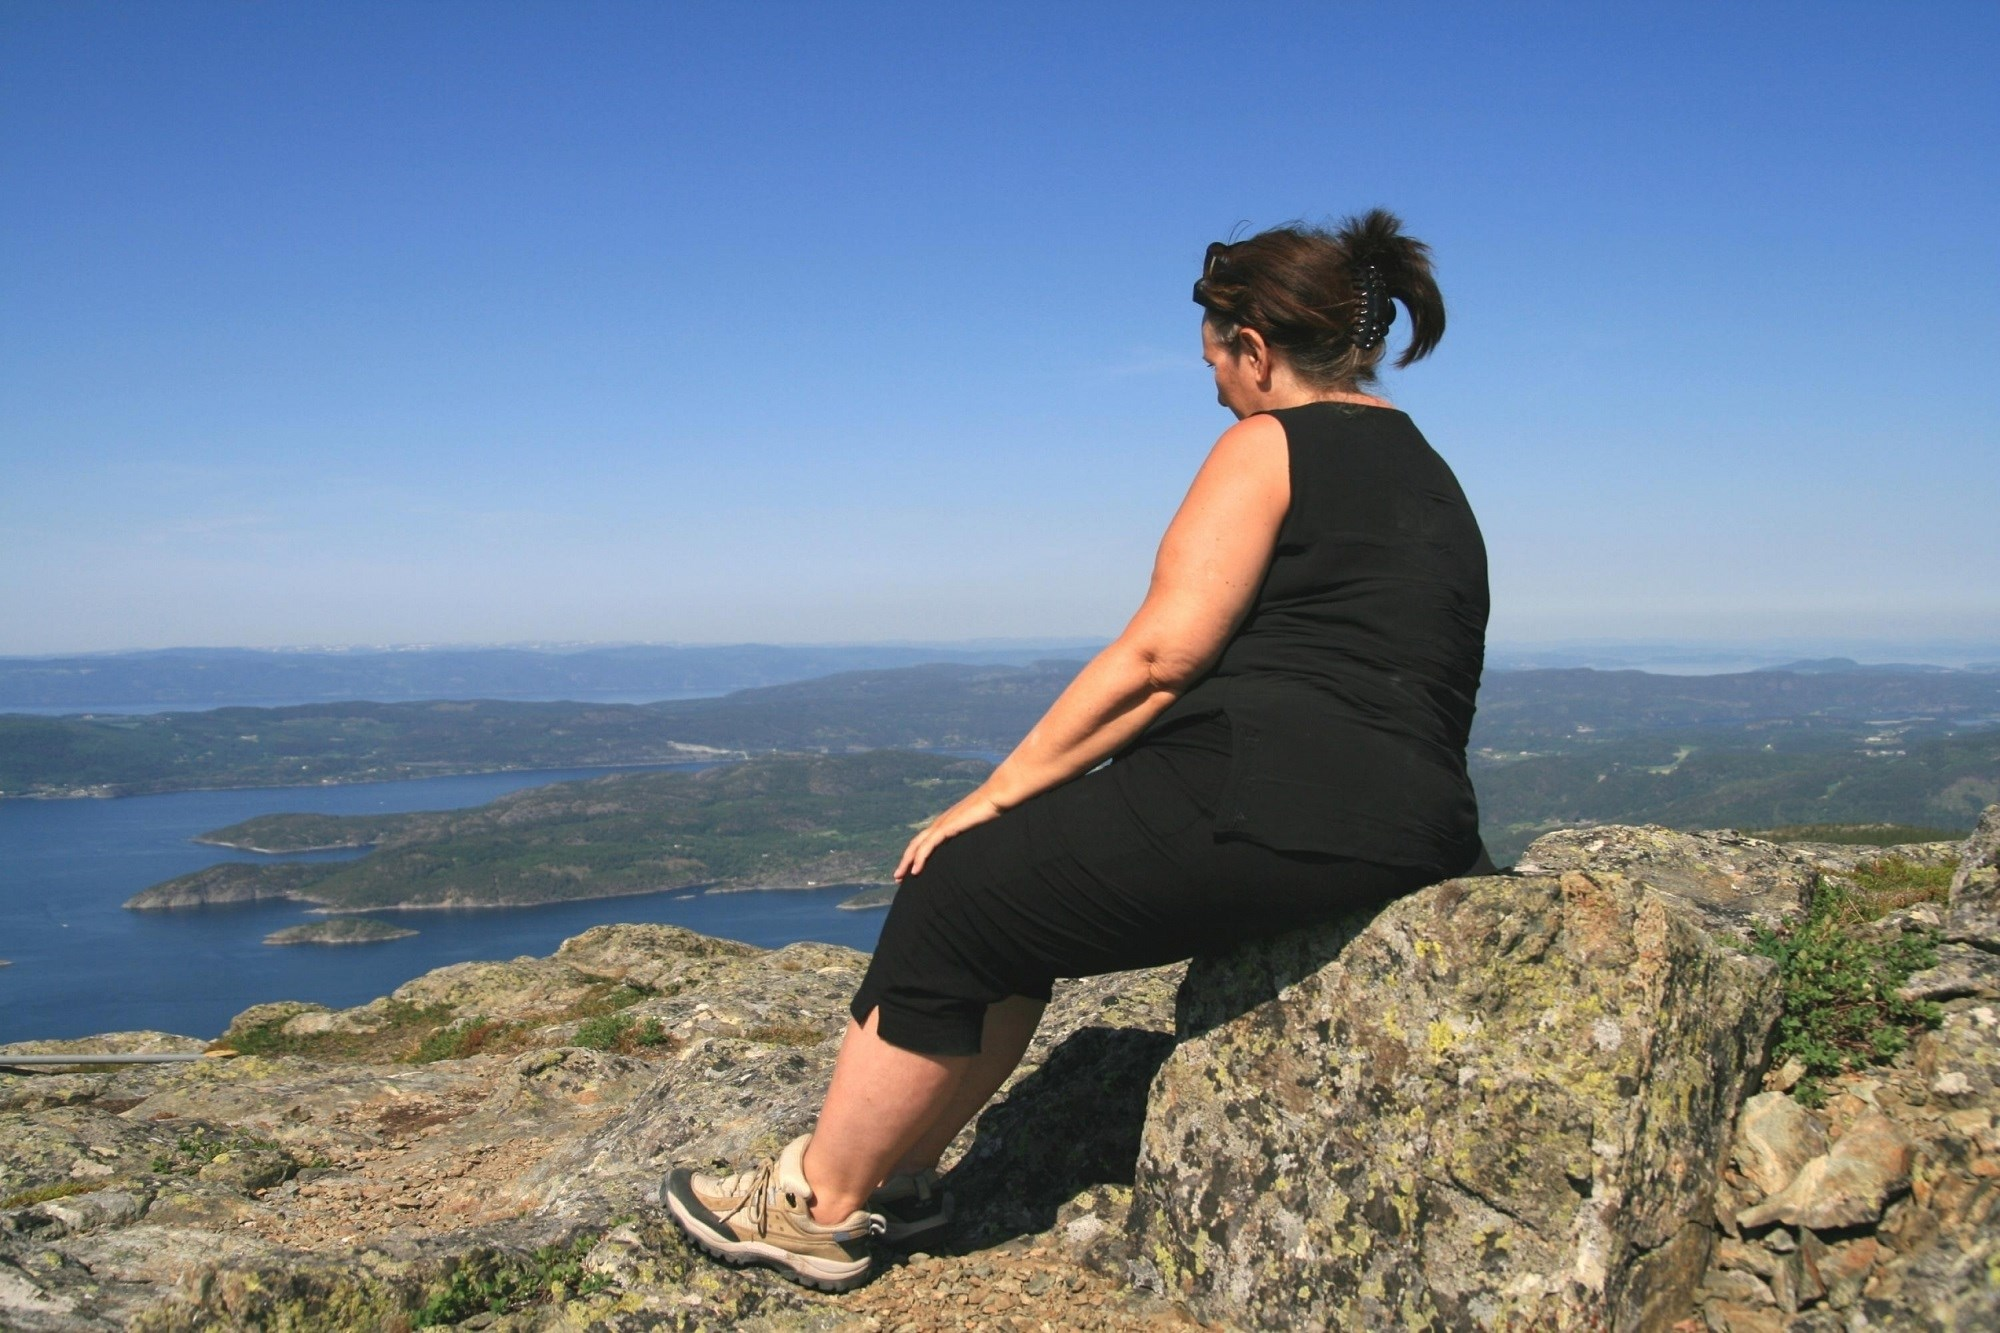 Depression and Obesity Associated With Chronic Hip Pain